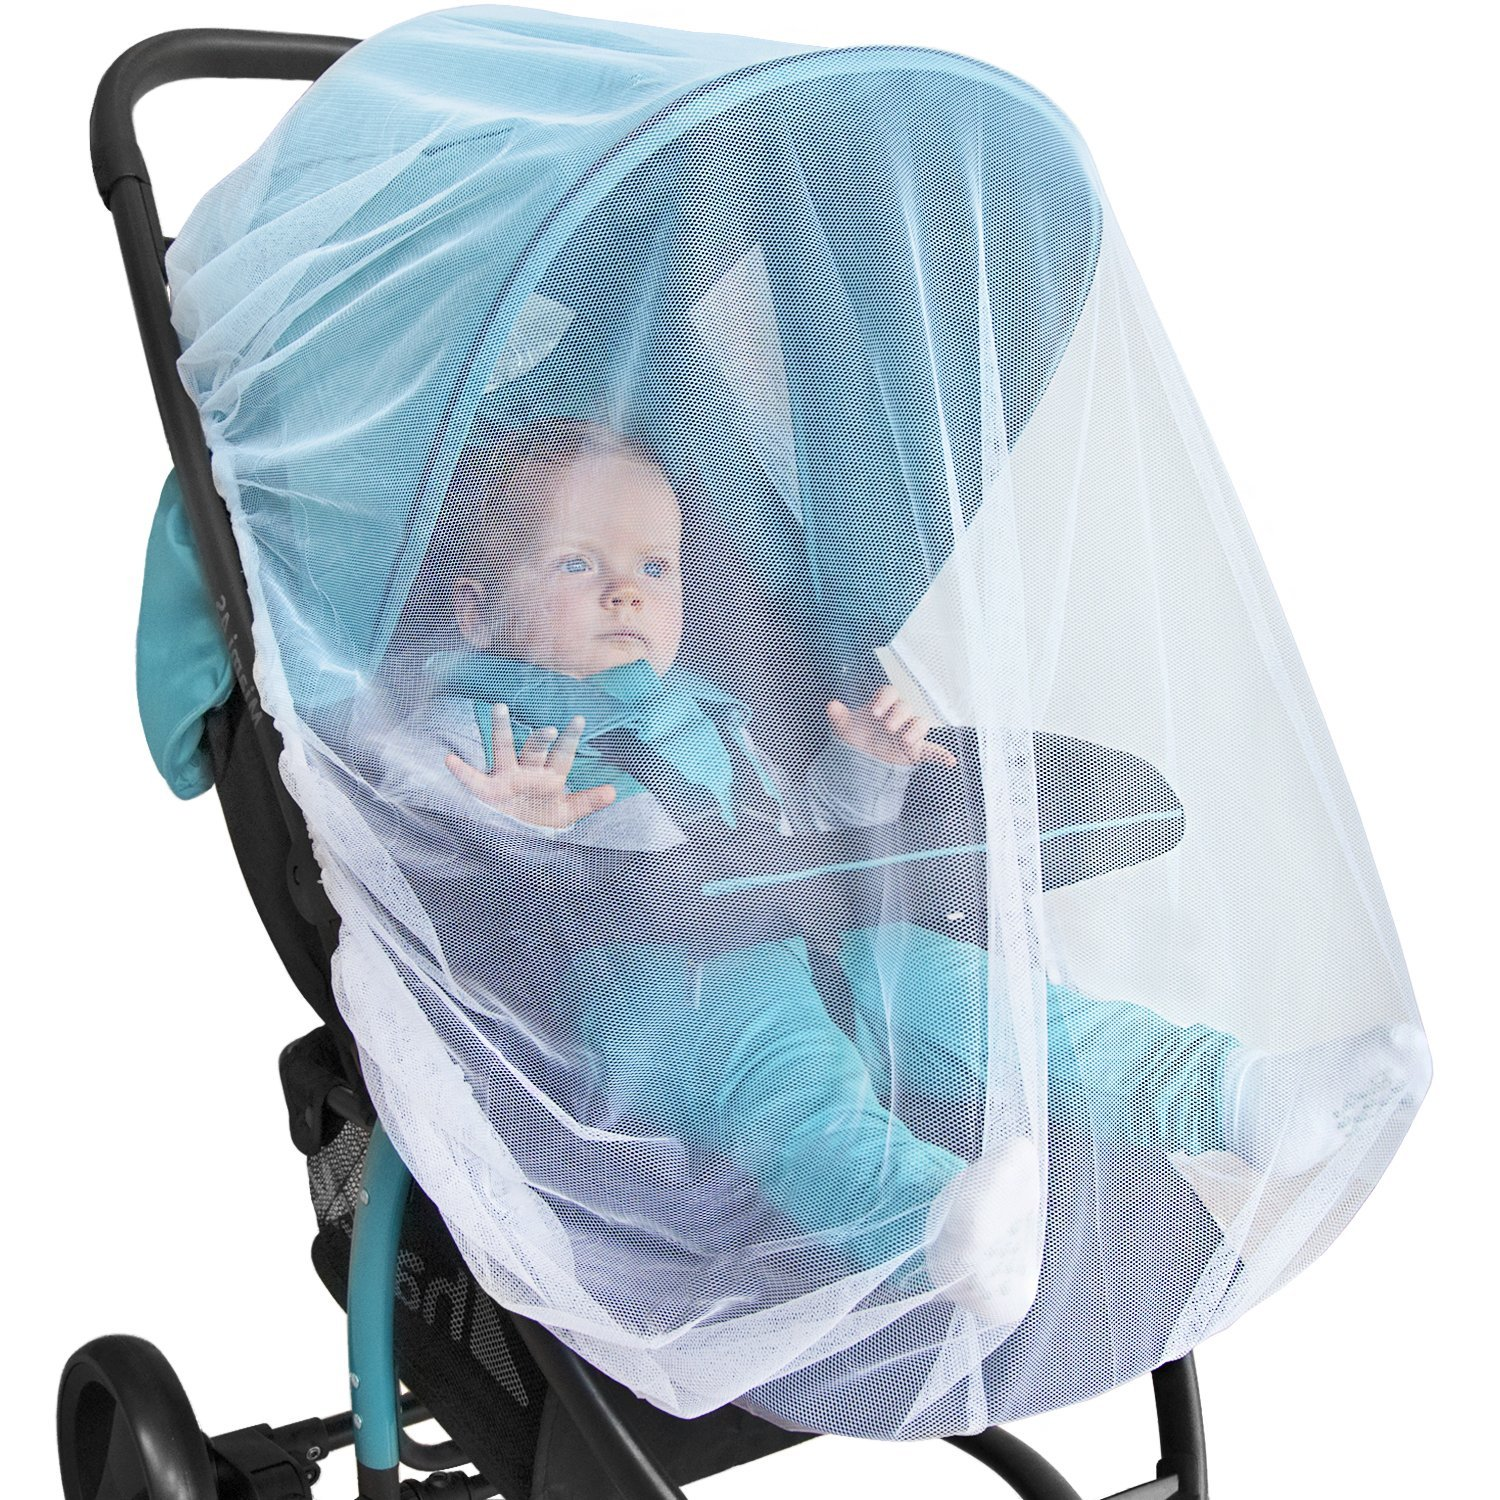 Car Seat /& Bassinet Toddler Insect Shield Canopy /& Gift Packaging Premium Infant Bug Protection for Jogger Carrier /& Pack N Play Baby Mosquito Net for Stroller